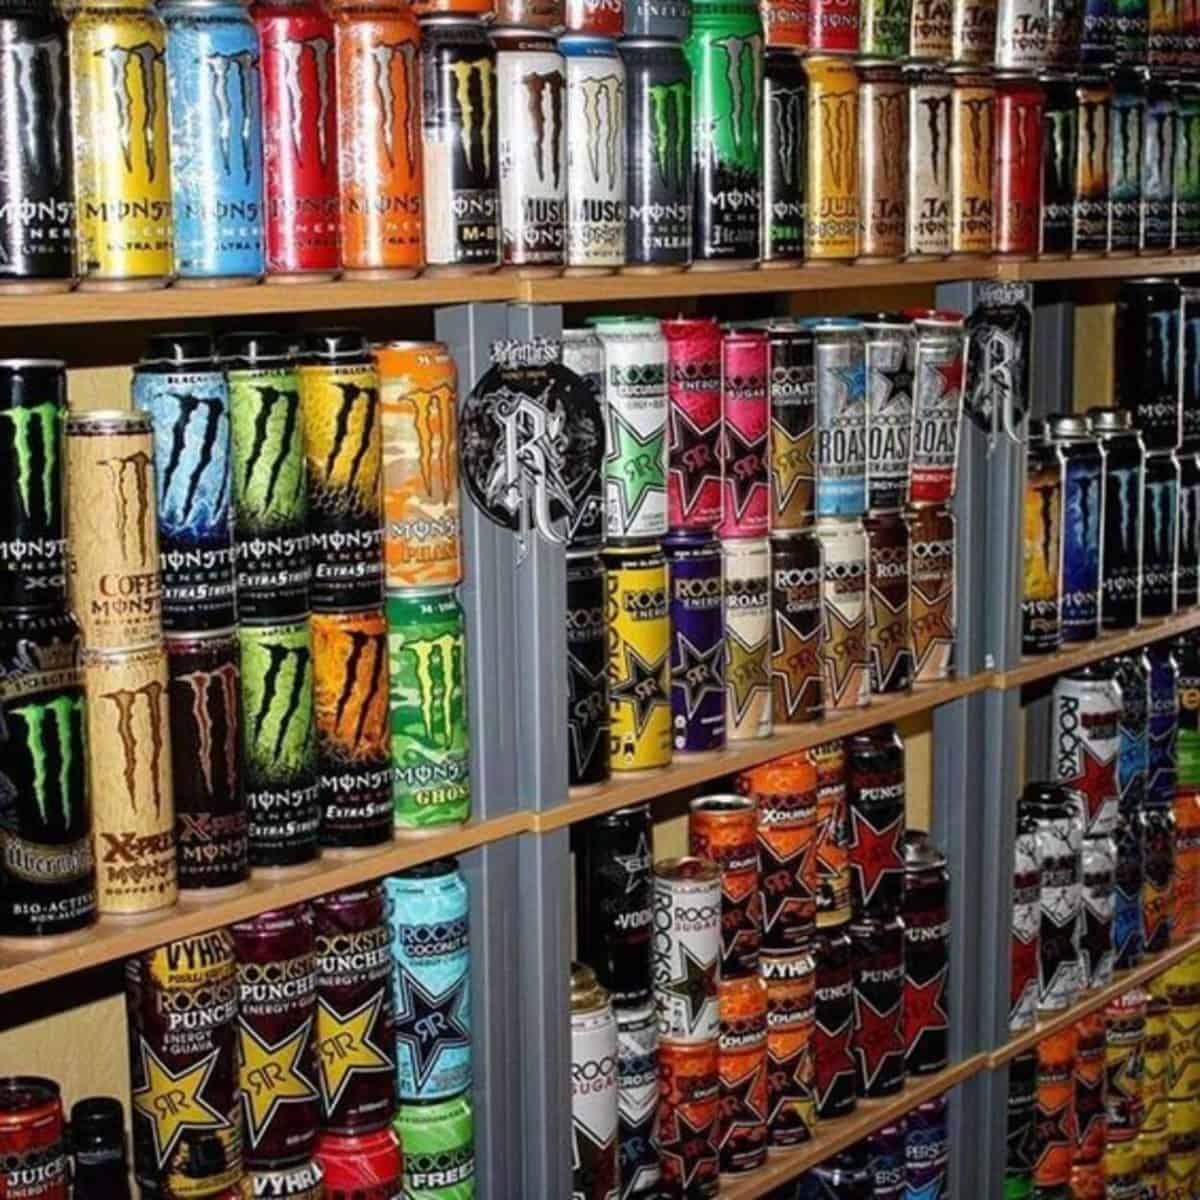 Different brand's Energy Drink